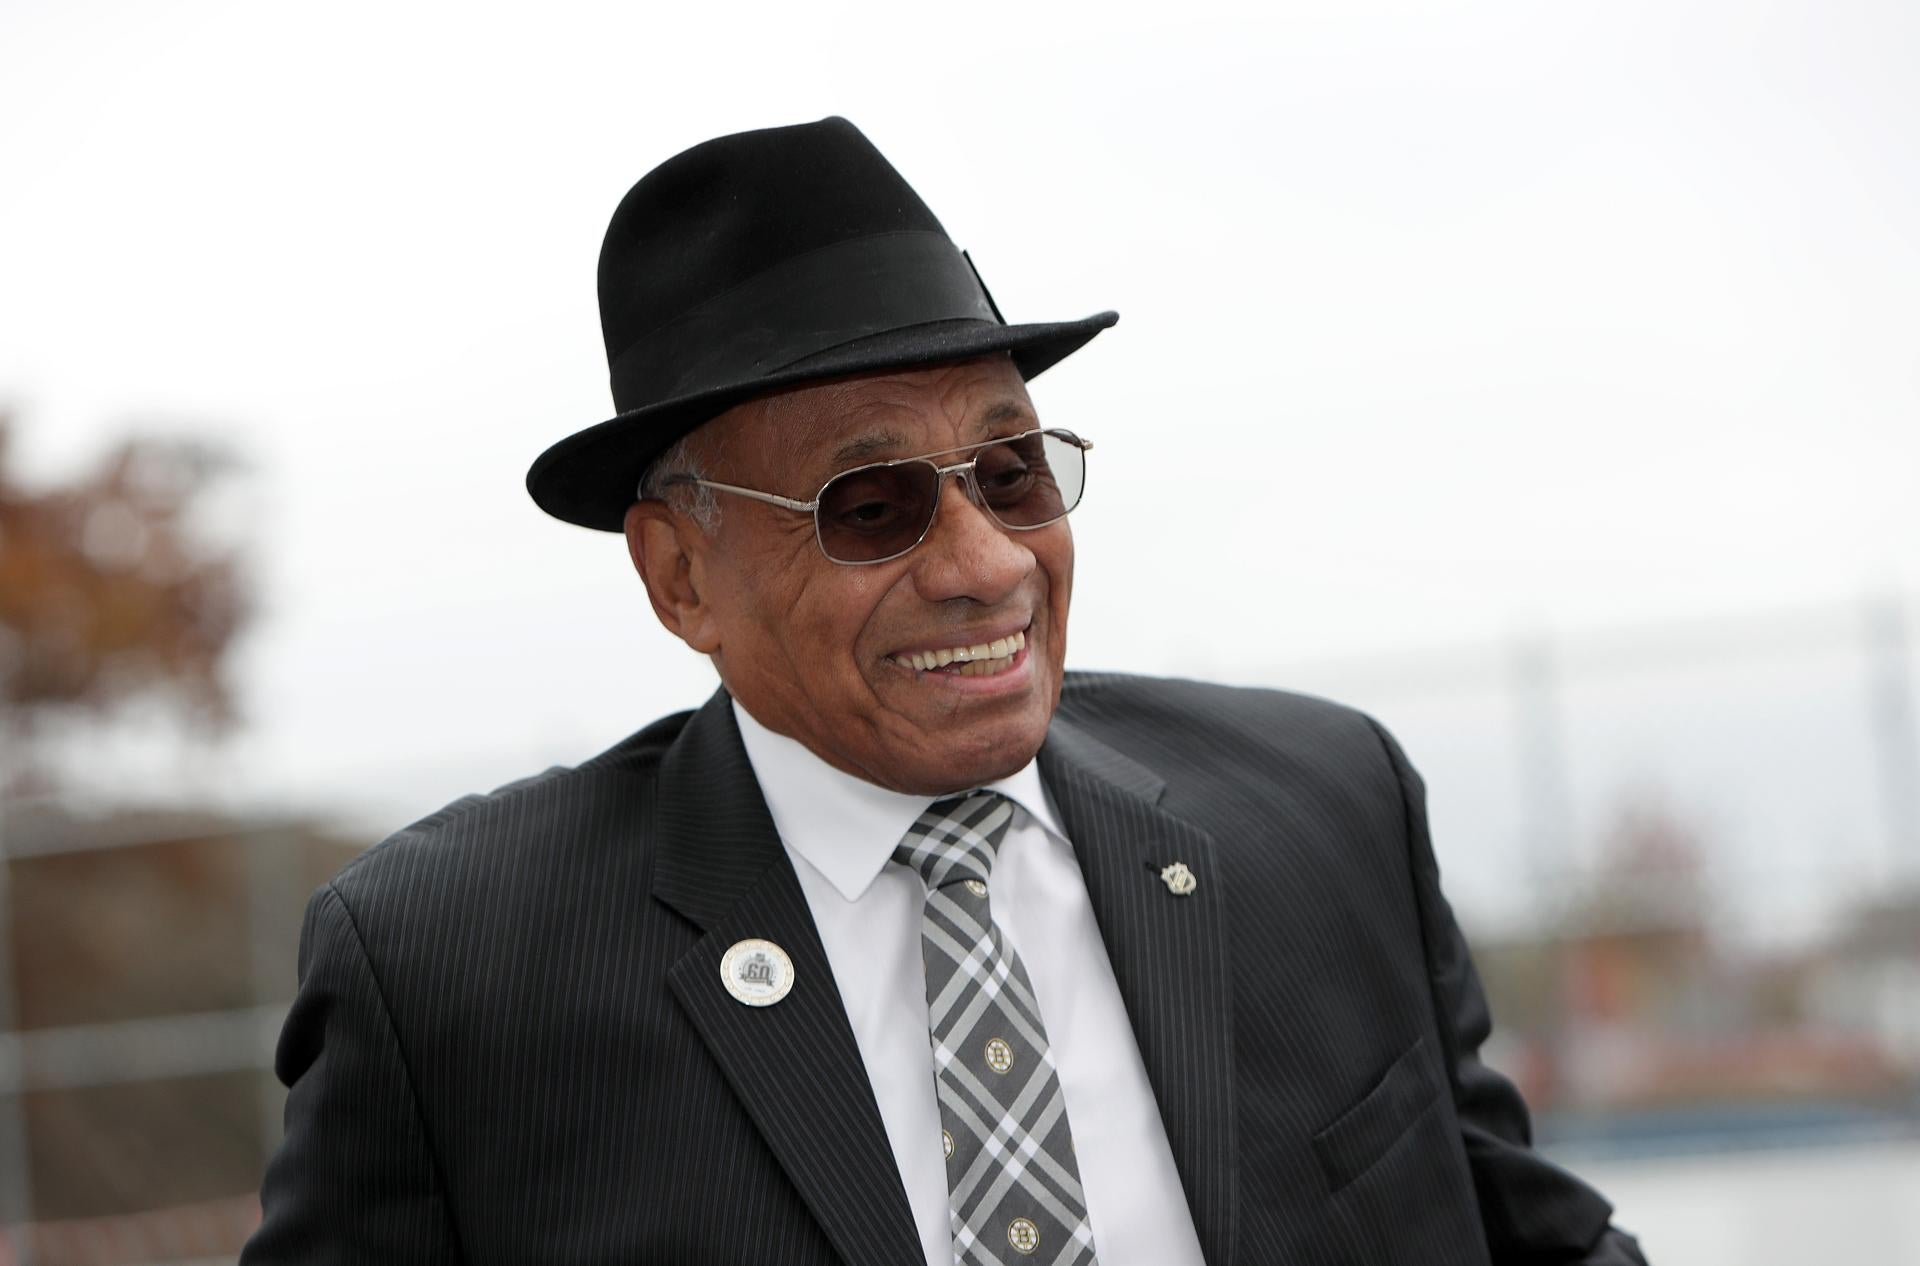 Allston , MA - 11/01/2018 - Willie O'Ree at today's dedication of the new Willie O'Ree street hockey rink at Smith Field in Allston. - (Barry Chin/Globe Staff), Section: Sports, Reporter: Kevin Paul Dupont, Topic: 02Bruins, LOID: 8.4.3691829478.